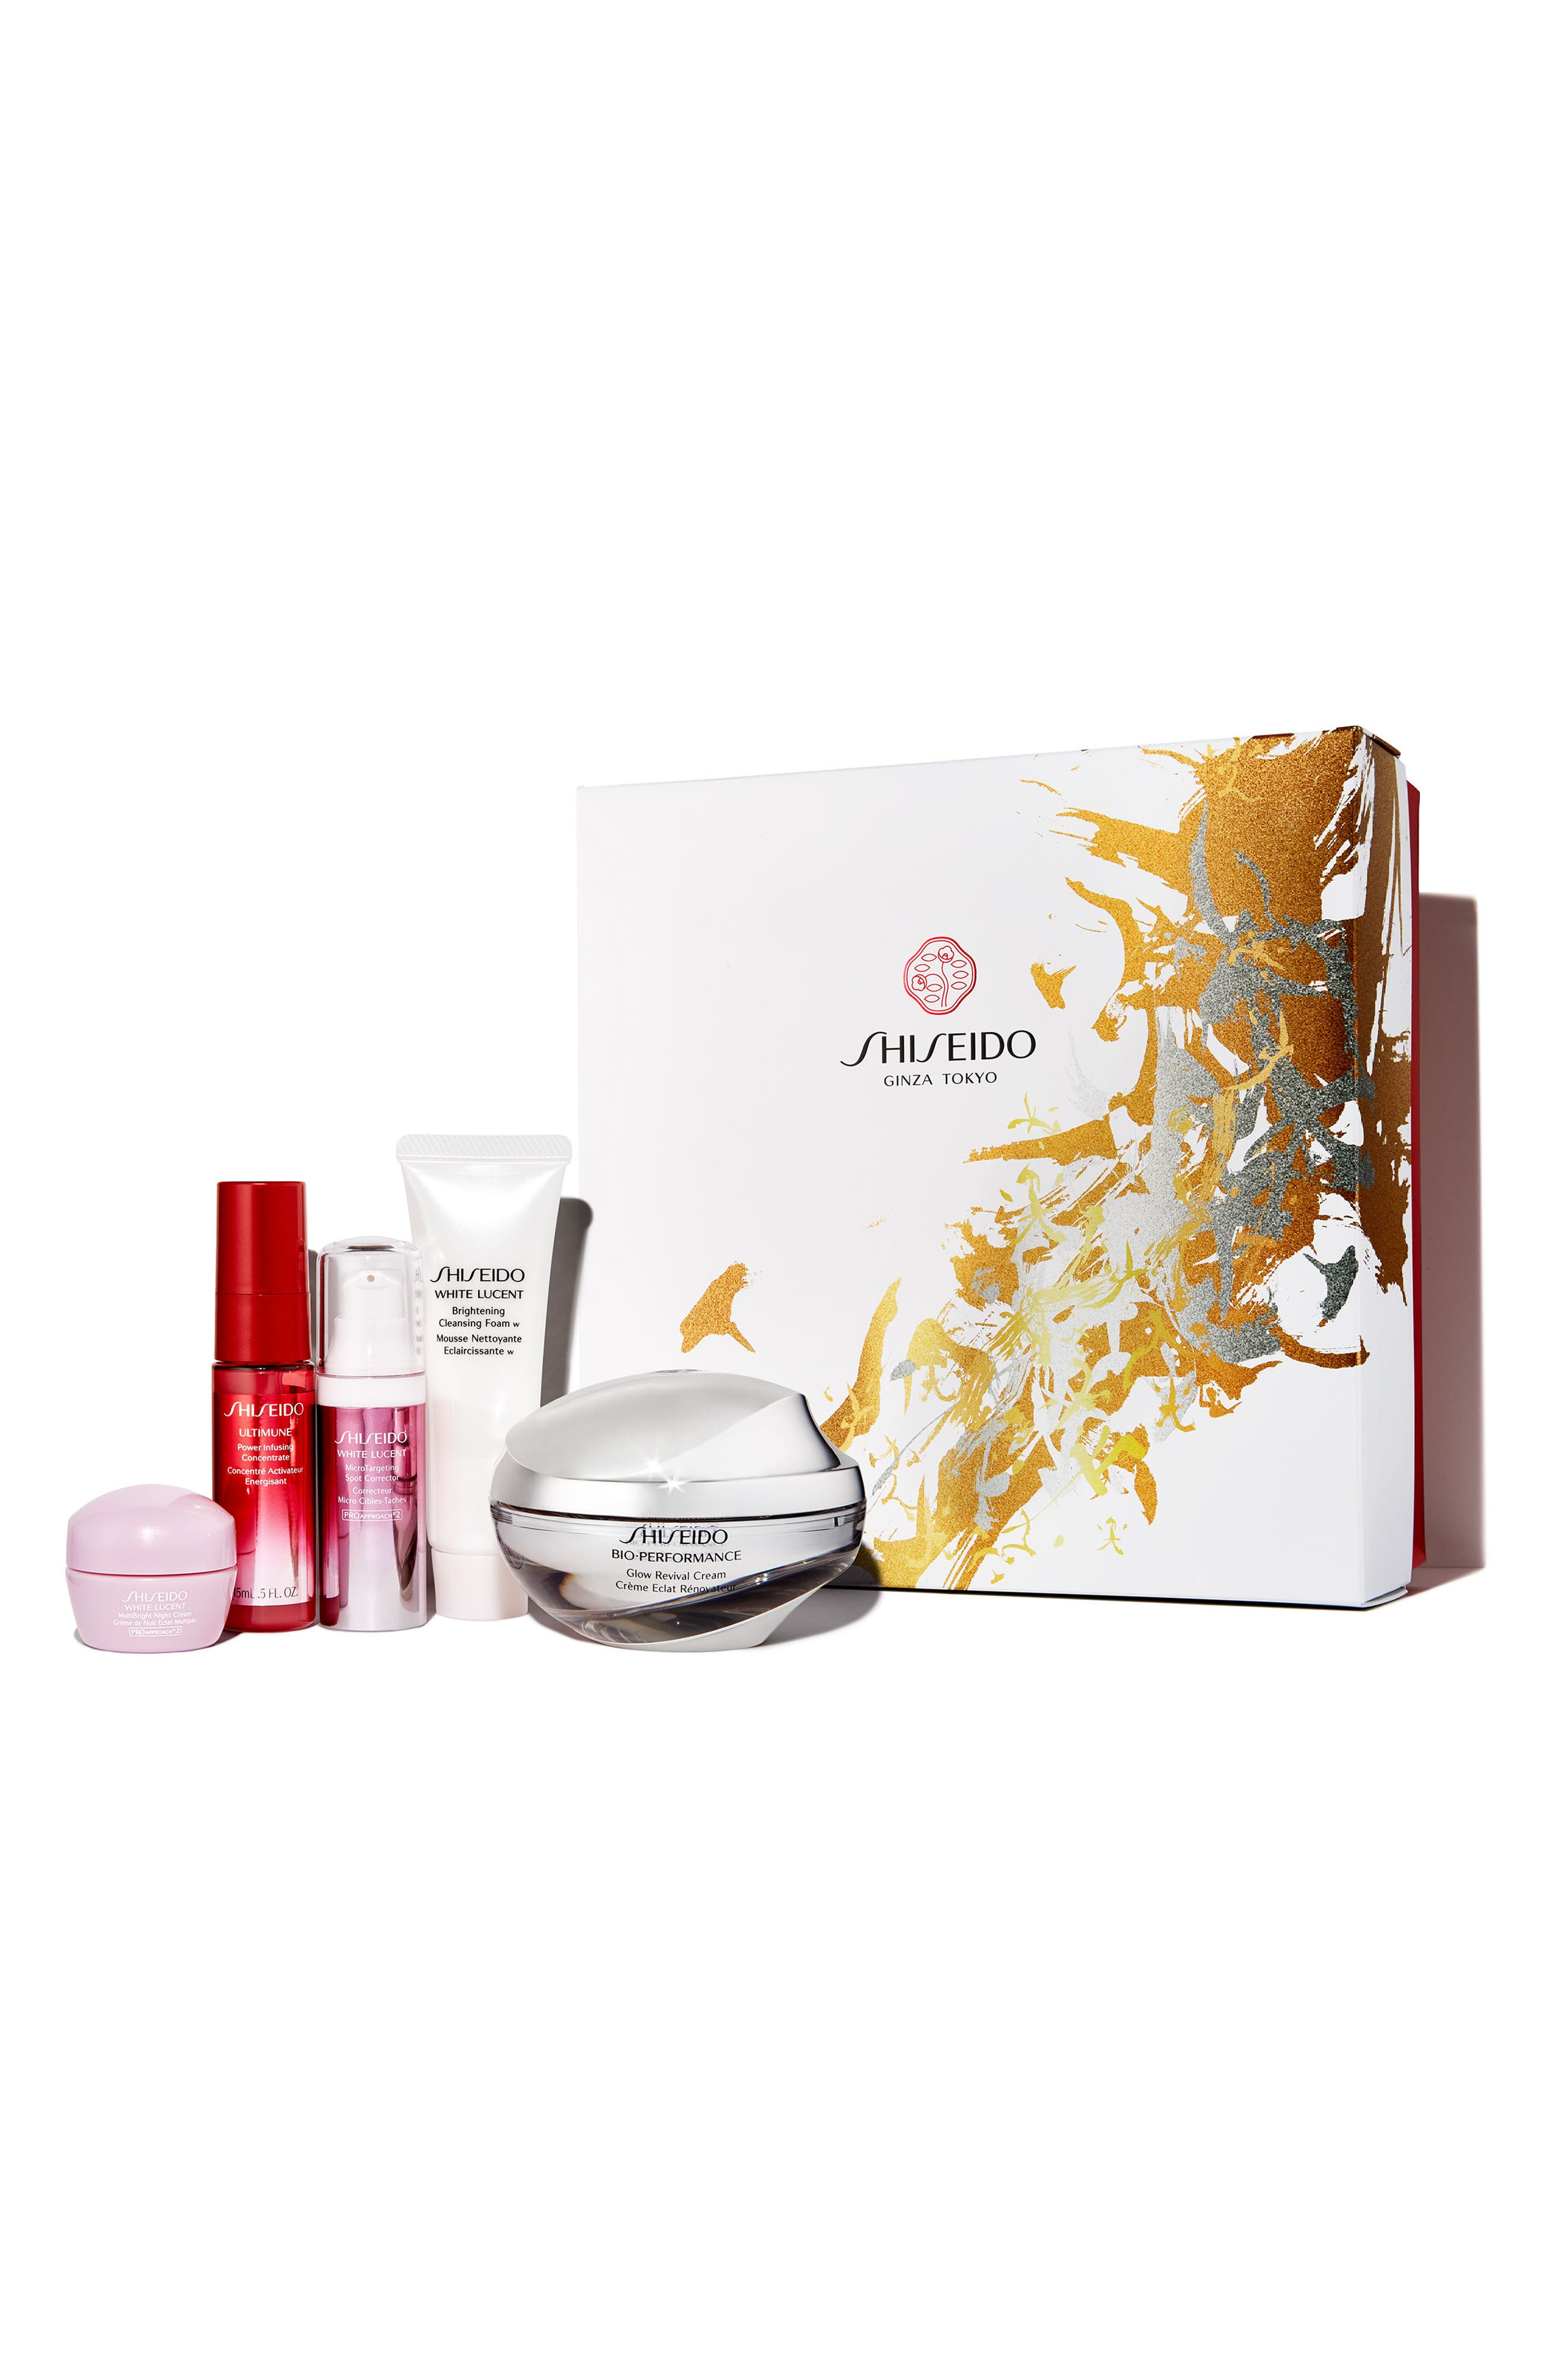 Shiseido Super Glowing Collection ($216 Value)